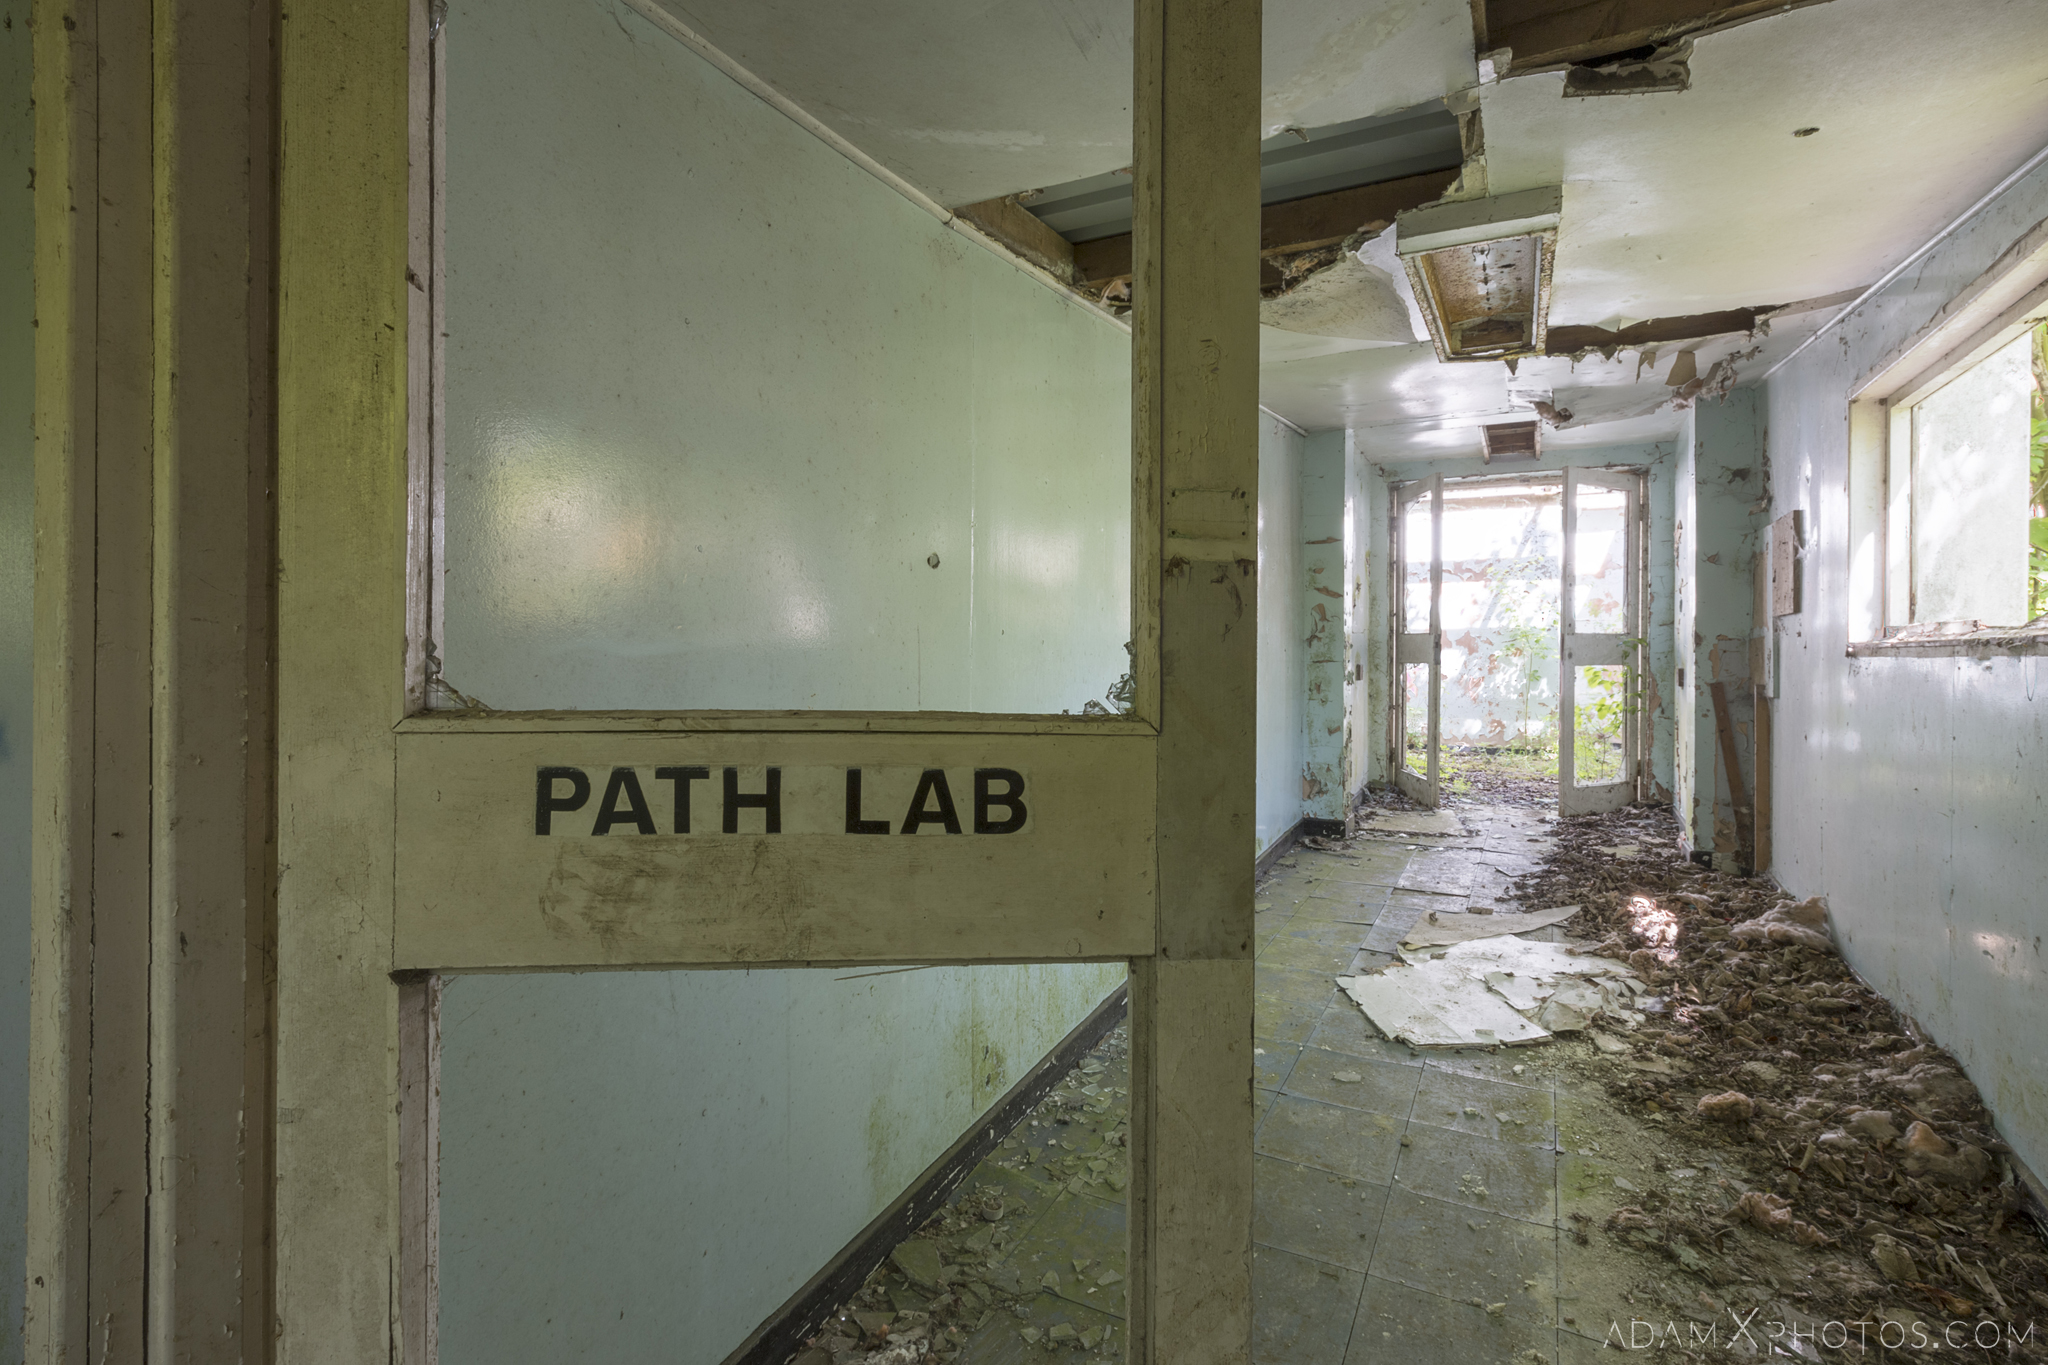 Path Lab pathology sign Nocton Hall RAF Hospital Lincolnshire Adam X Urbex Urban Exploration Access 2018 Abandoned decay lost forgotten derelict location creepy haunting eerie